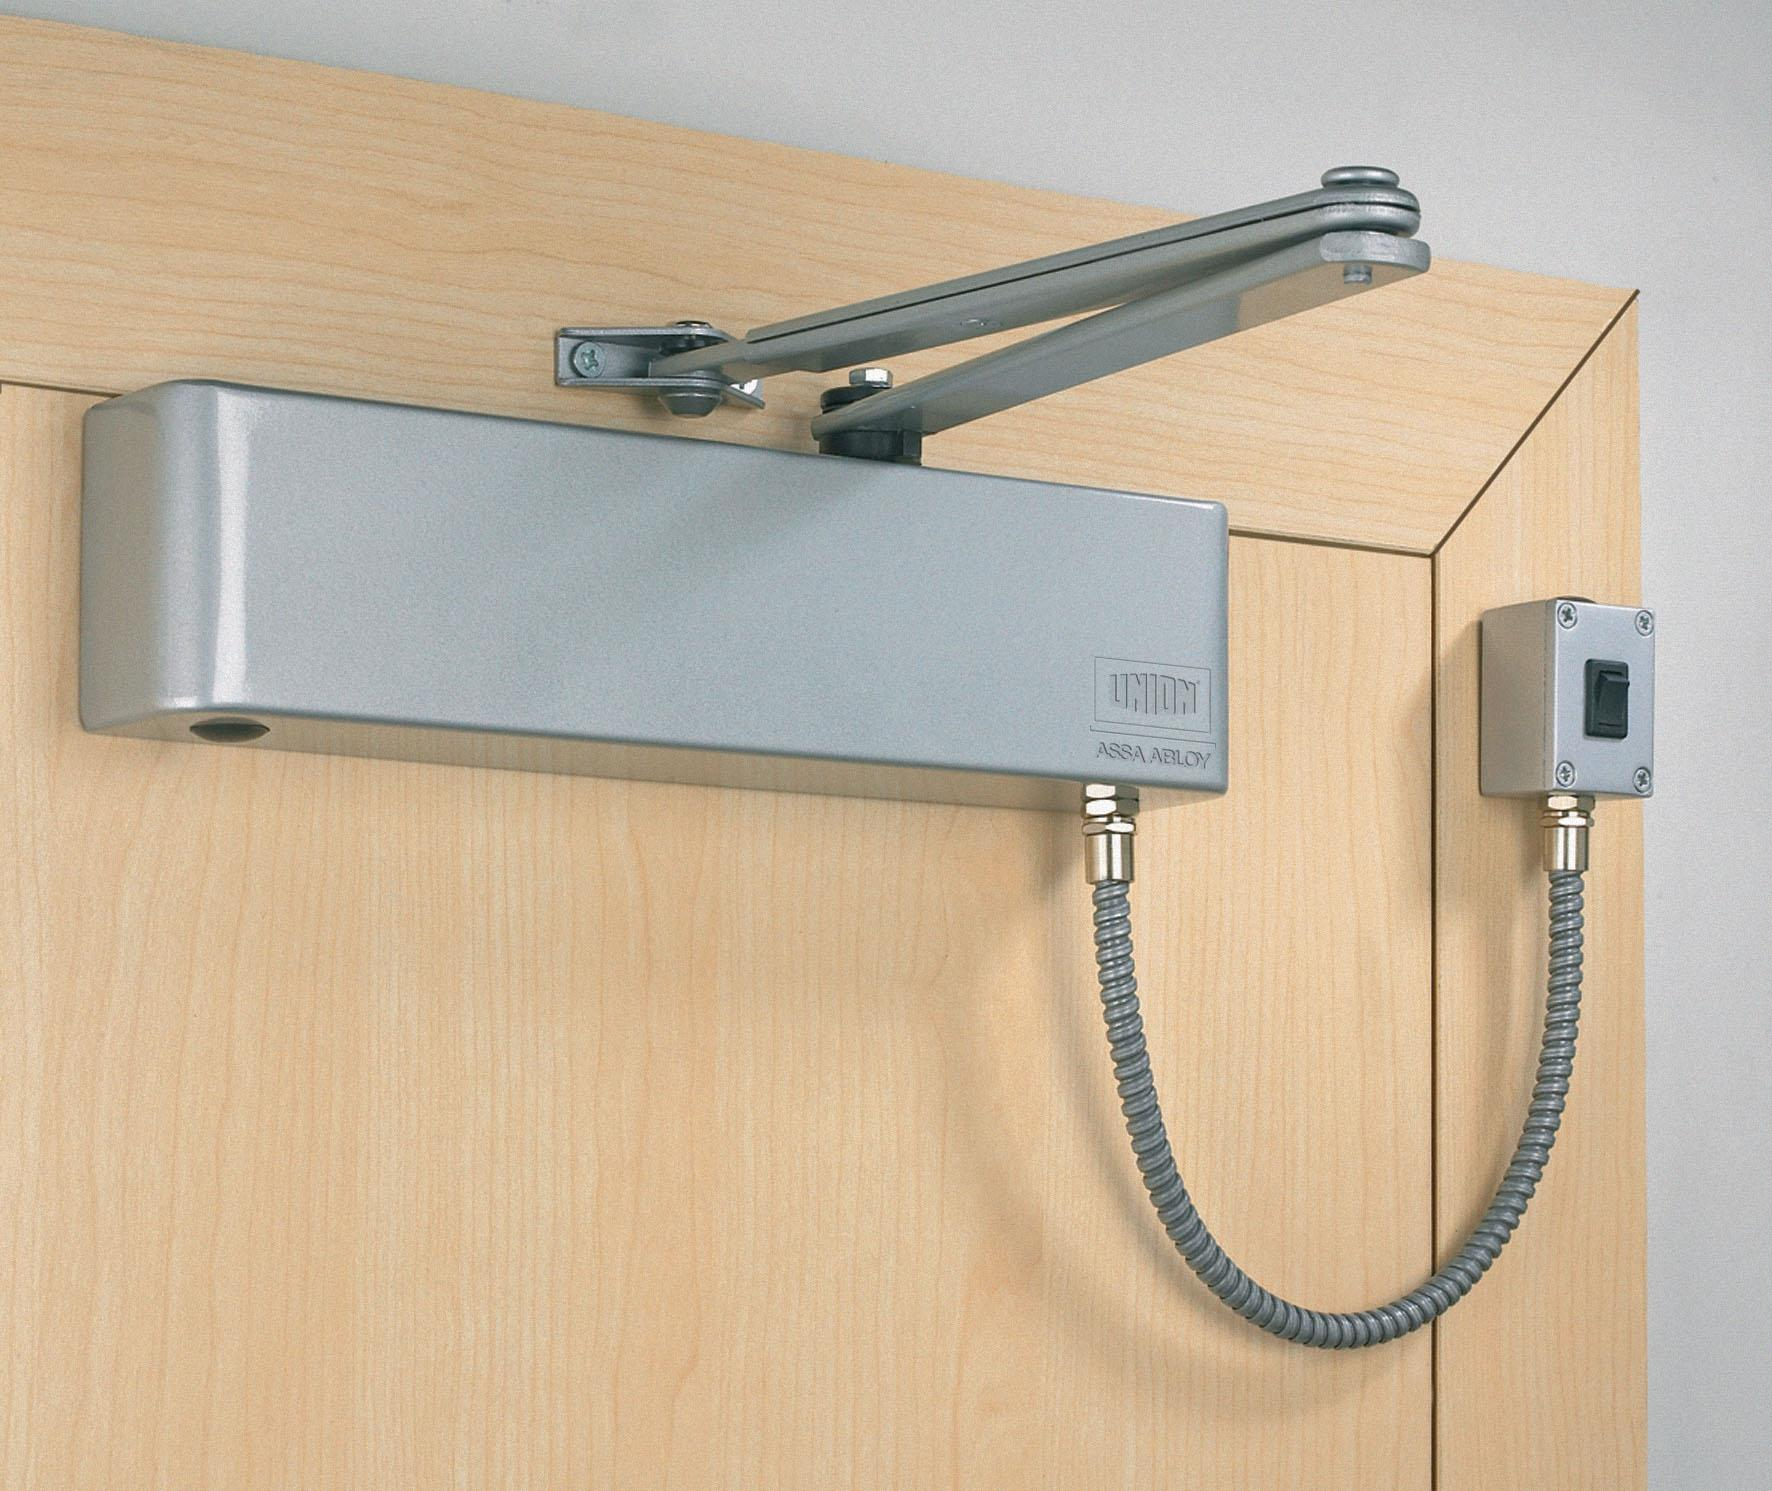 UNION Electro Magnetic Door Closers